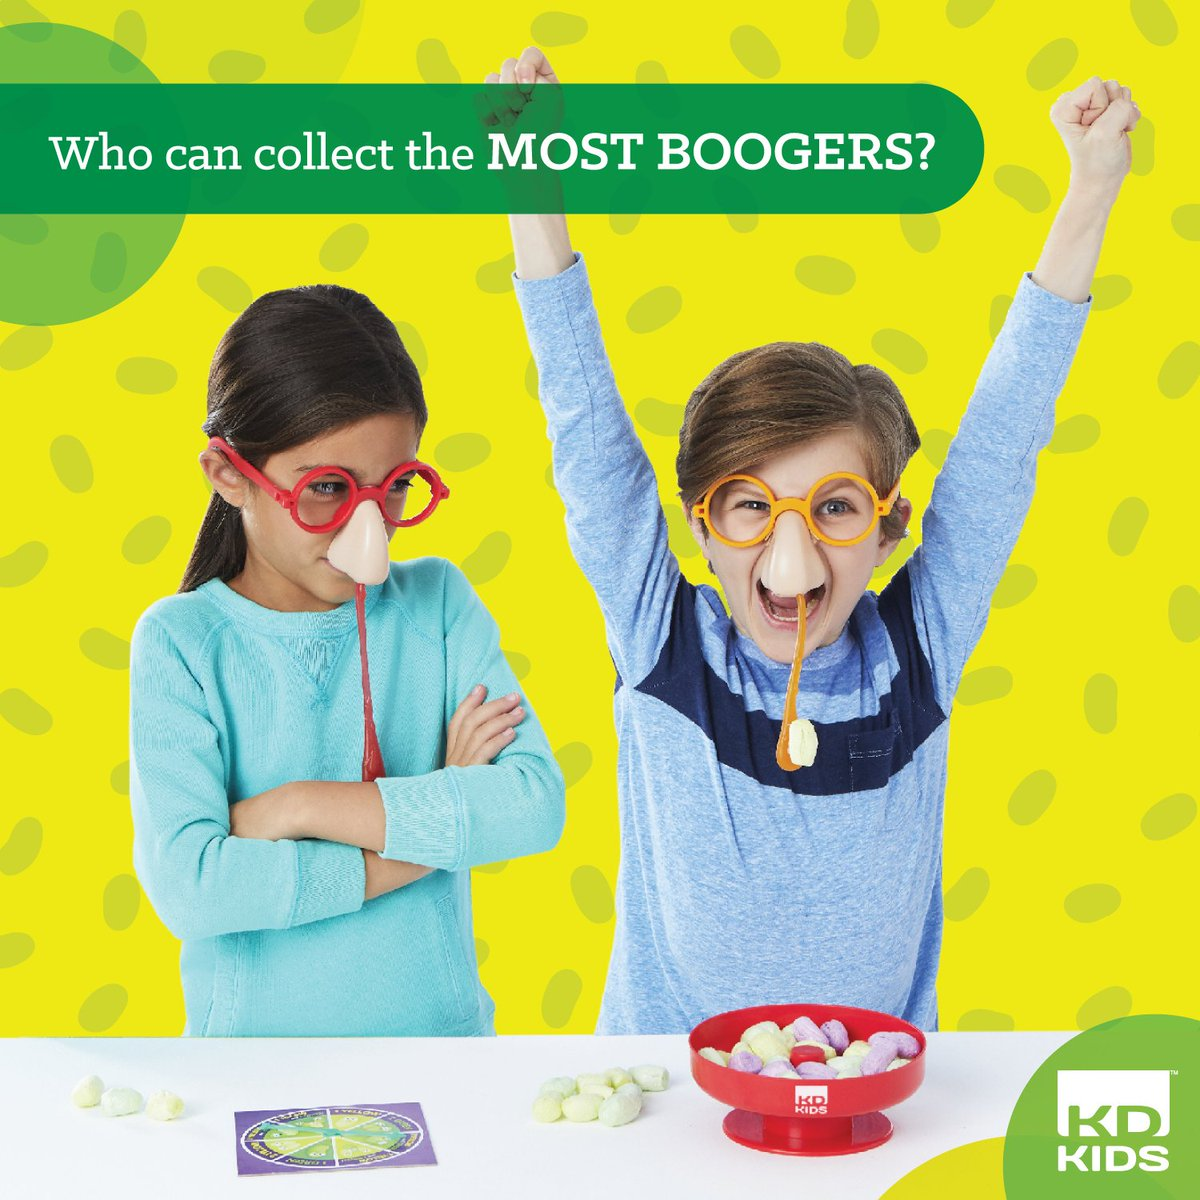 c8328d2445f ... the most boogers using only the snot hanging from their glasses!  Available now on  Amazon  https   buff.ly 2qj015E  games pic.twitter.com NQ3LJ5AuRX